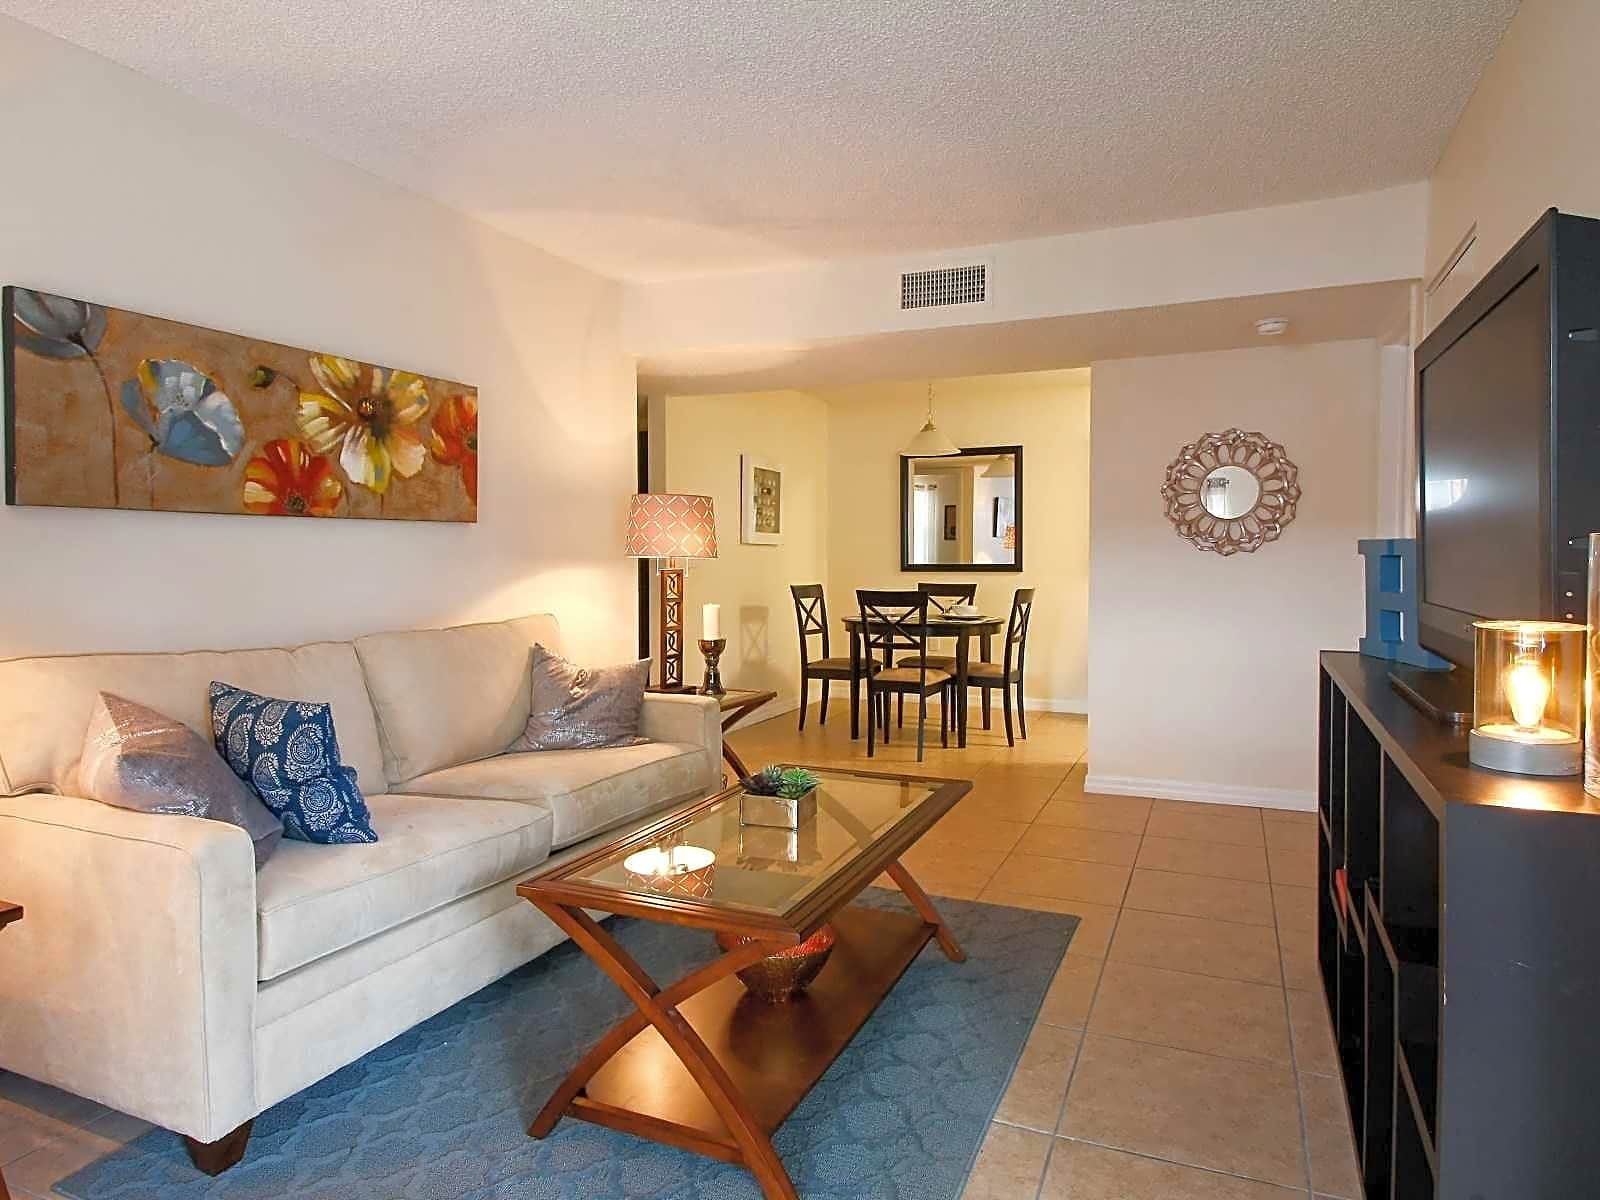 Apartments Near SPC Harbour Cay for St. Petersburg College Students in Clearwater, FL